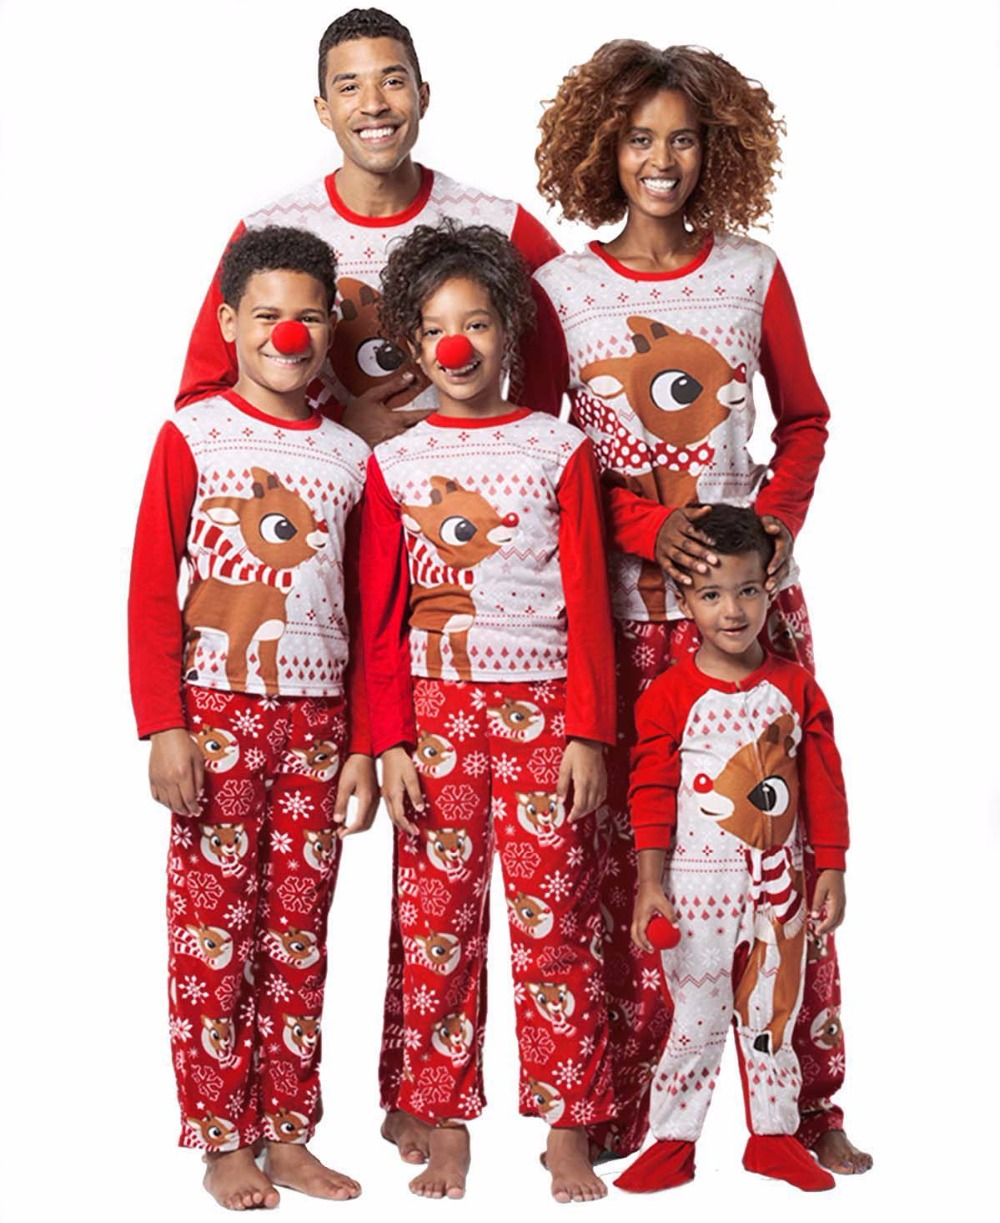 Family Matching Outfits Pajamas-Set Nightwear Kids Red Fashion Adult Sleepwear